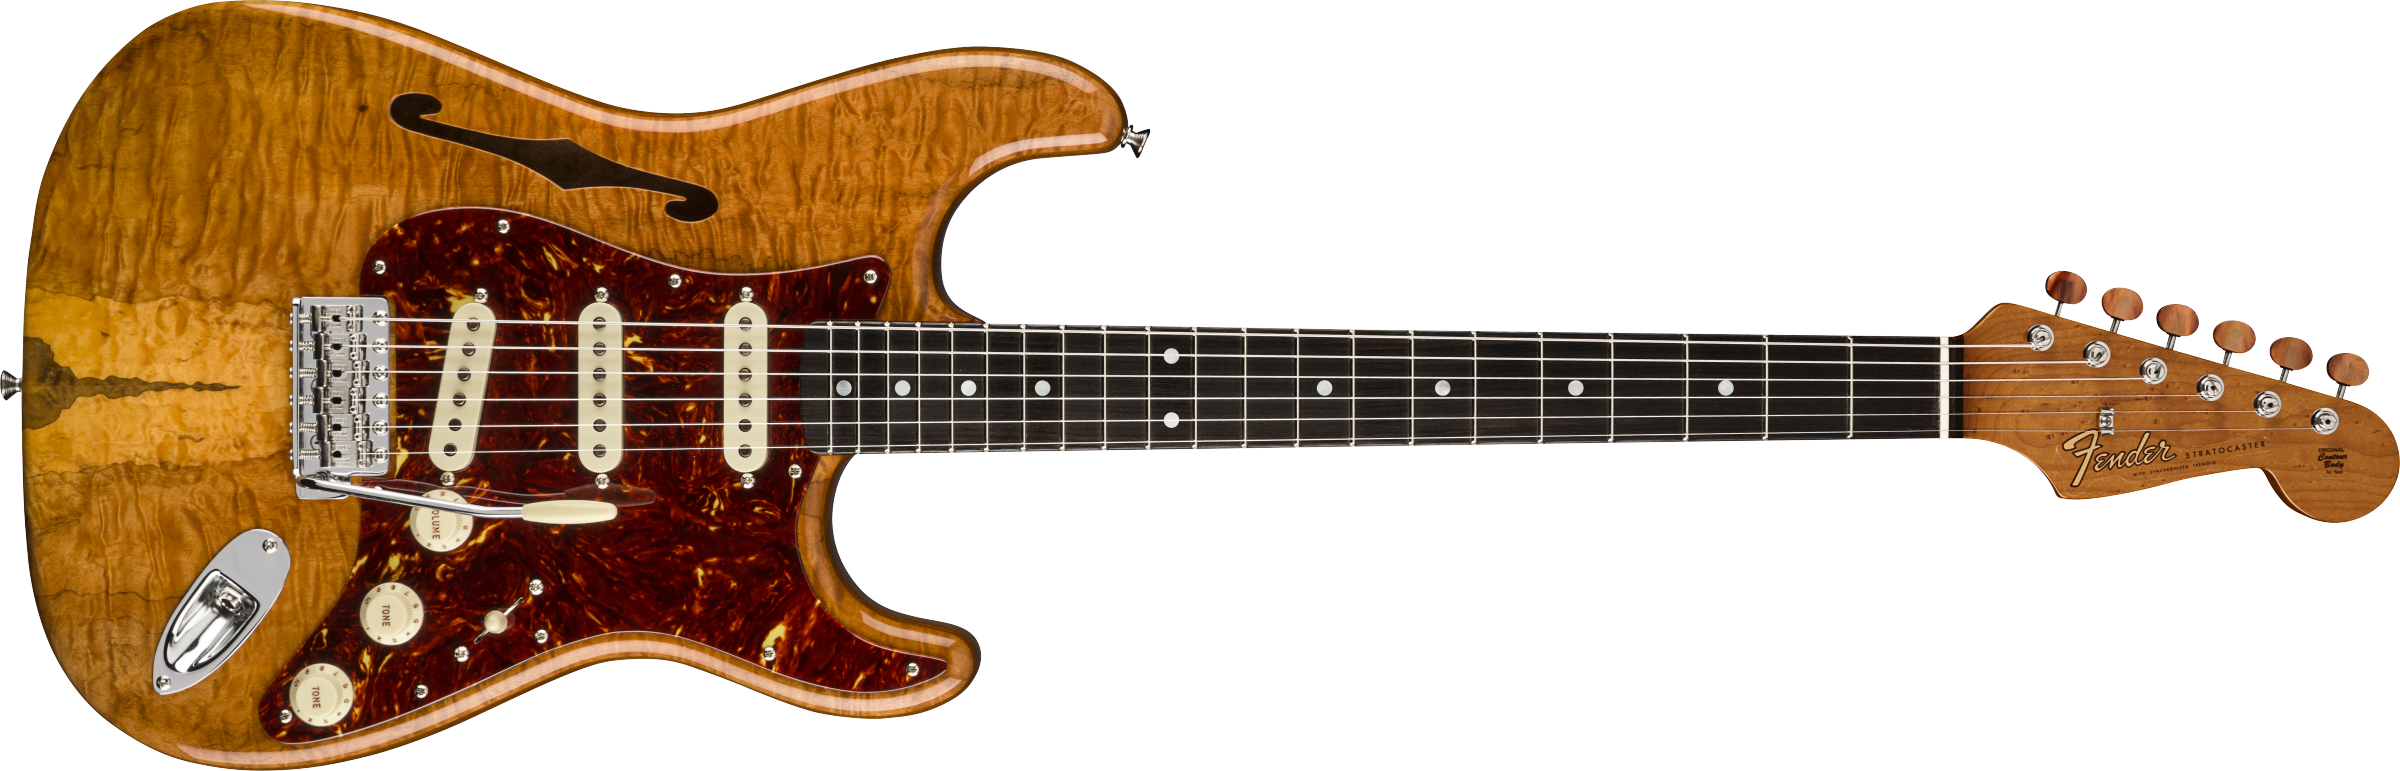 FENDER-Artisan-Spalted-Maple-Stratocaster-Thinline-Roasted-Ash-Body-with-Spalted-Maple-Top-Ebony-Fingerboard-Aged-Natural-sku-571005170